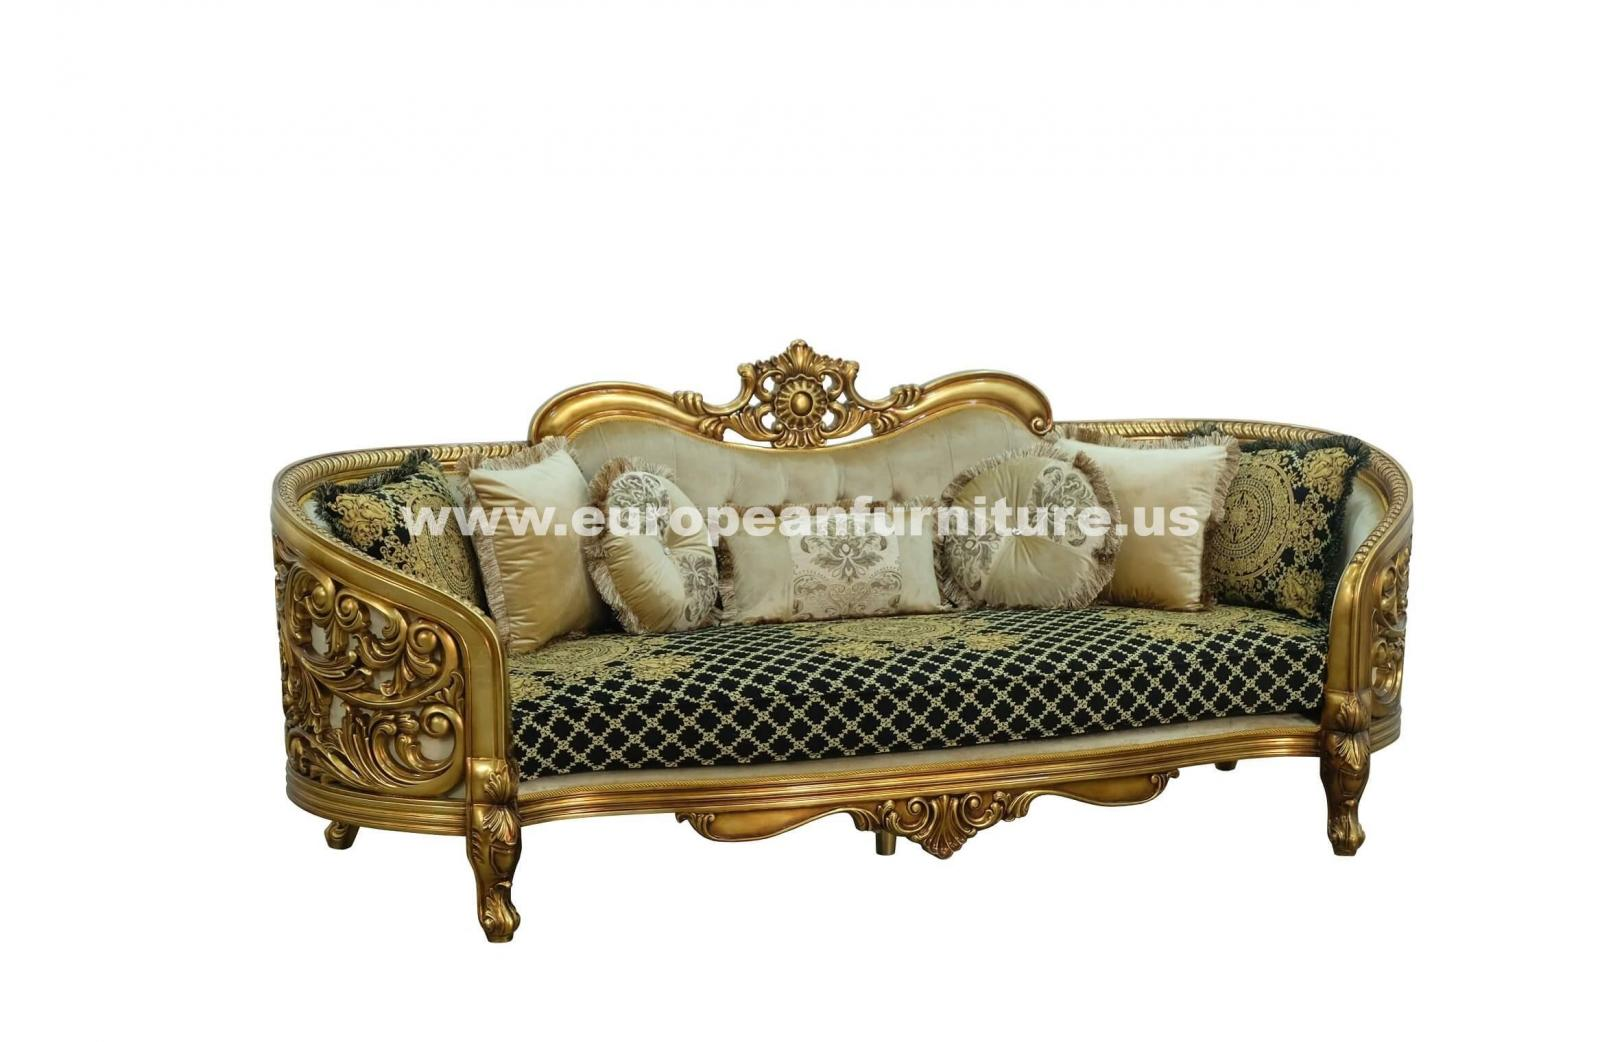 Classic, Traditional Beige, Bronze, Antique Fabric and Wood, Solid Hardwood Sofa 3018 BELLAGIO  by European Furniture